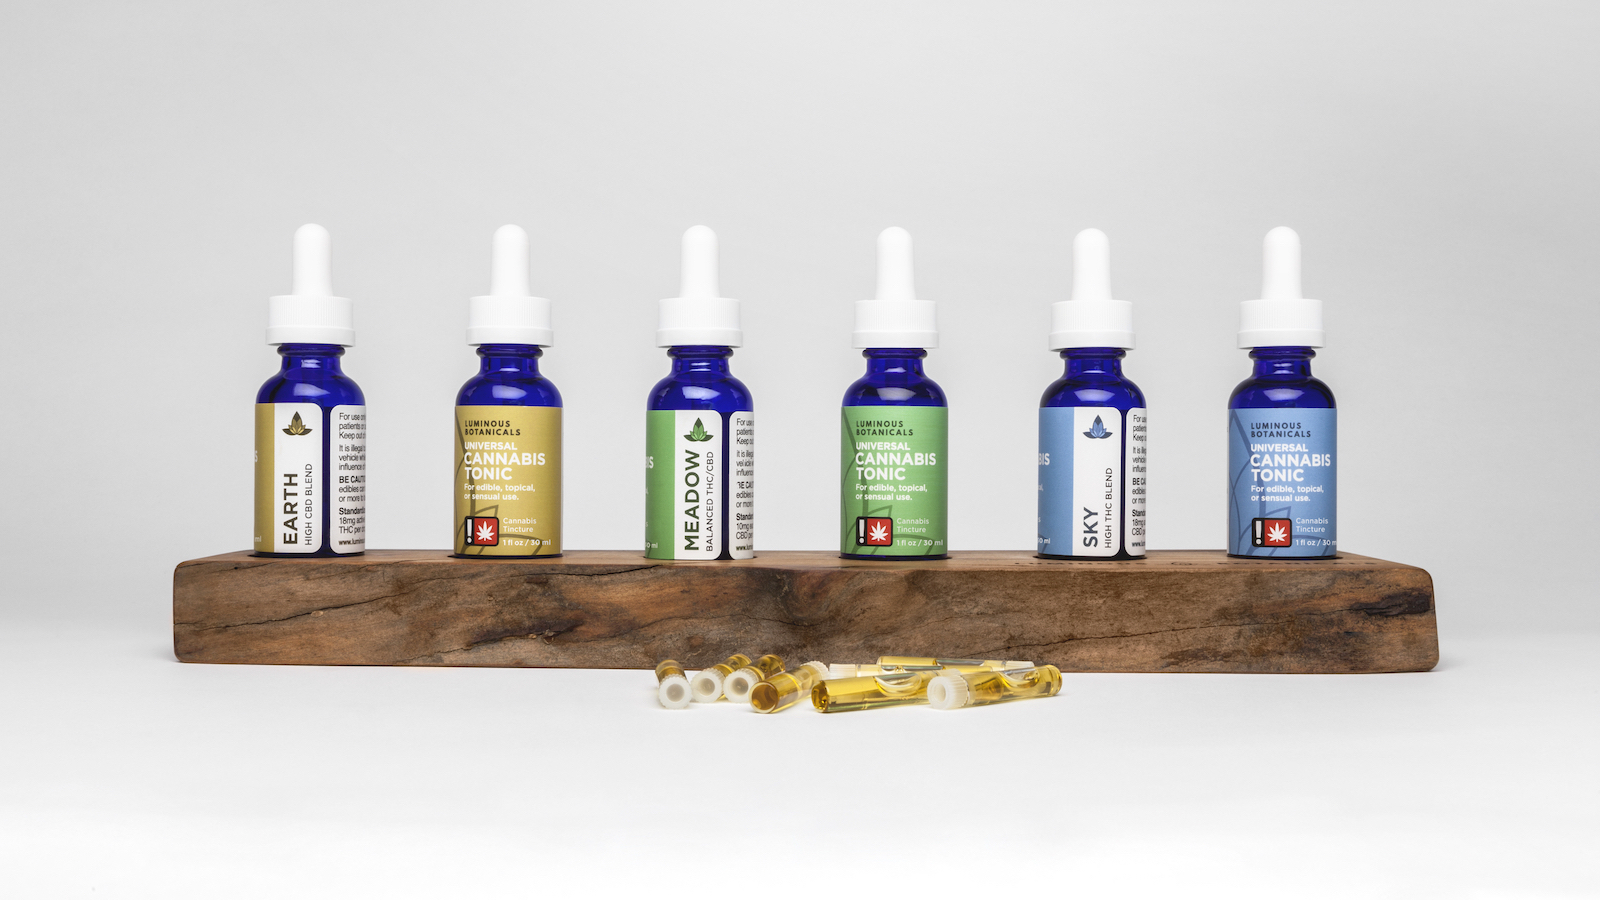 Six bottles of cannabis tonic displayed so two sides of each label can be seen. Each label has the product name listed horizontally over a color field, and the blend vertically over a white column.